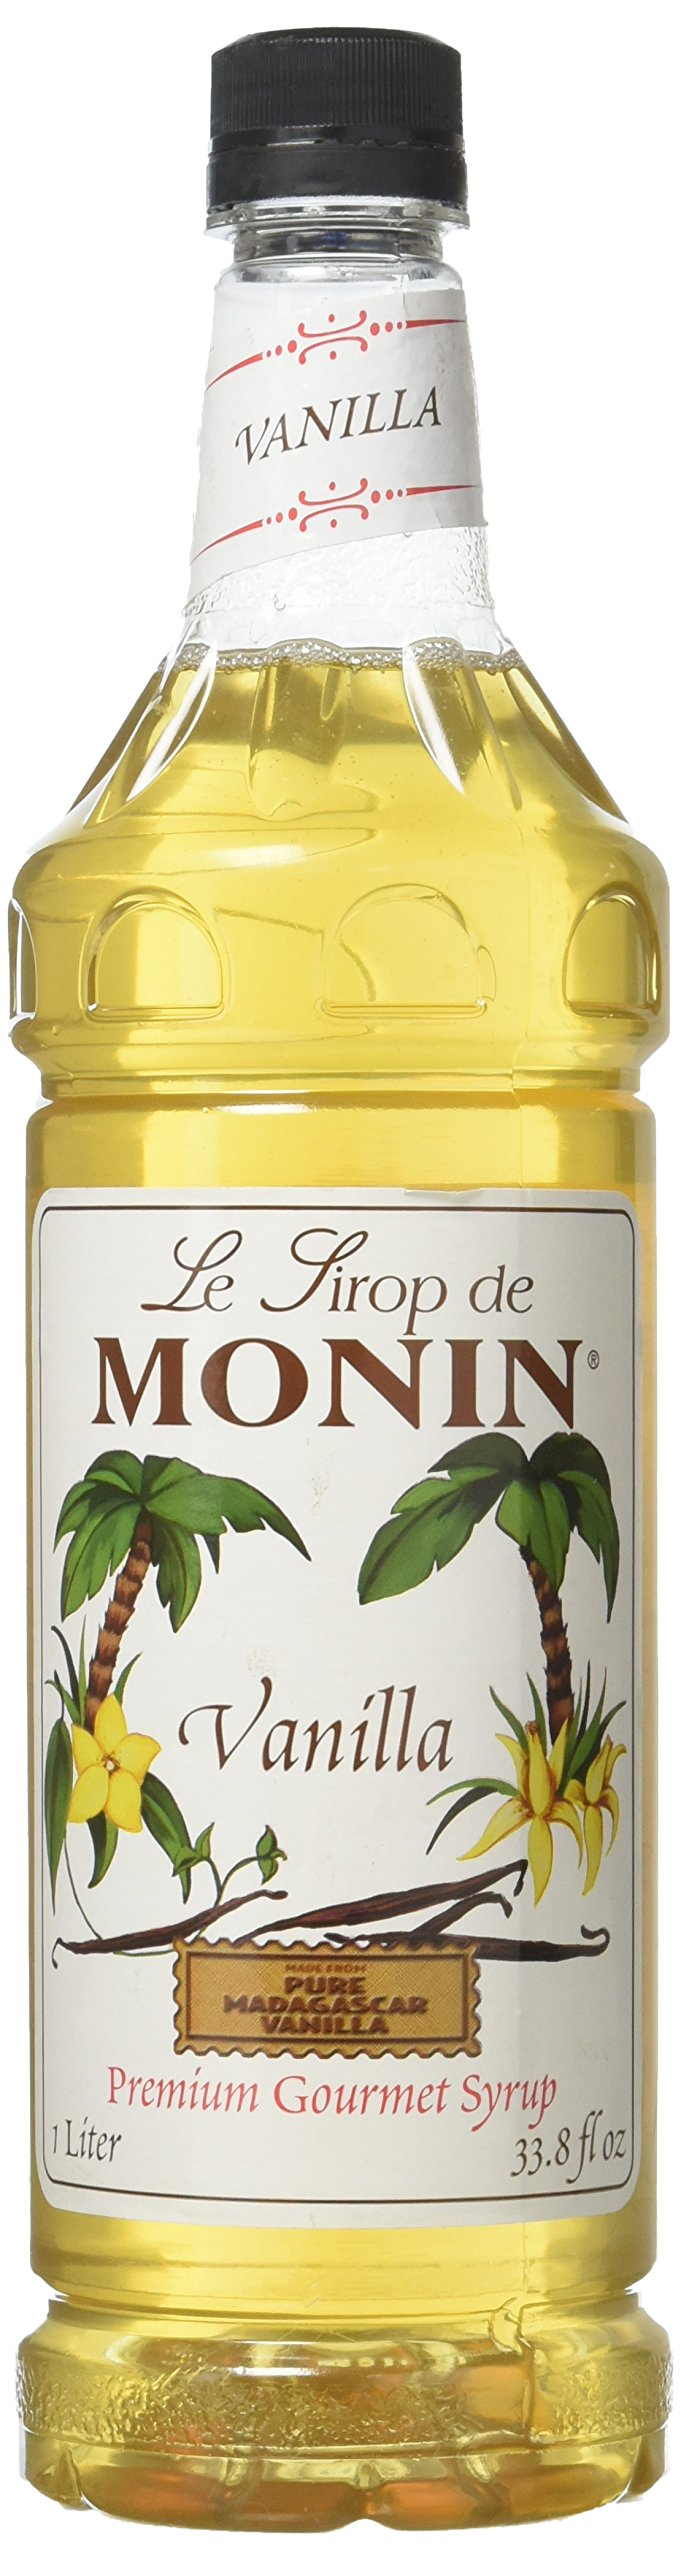 Monin Vanilla Drink Syrup - Great For Flavoring Coffee, Shakes, And Cocktails - 1